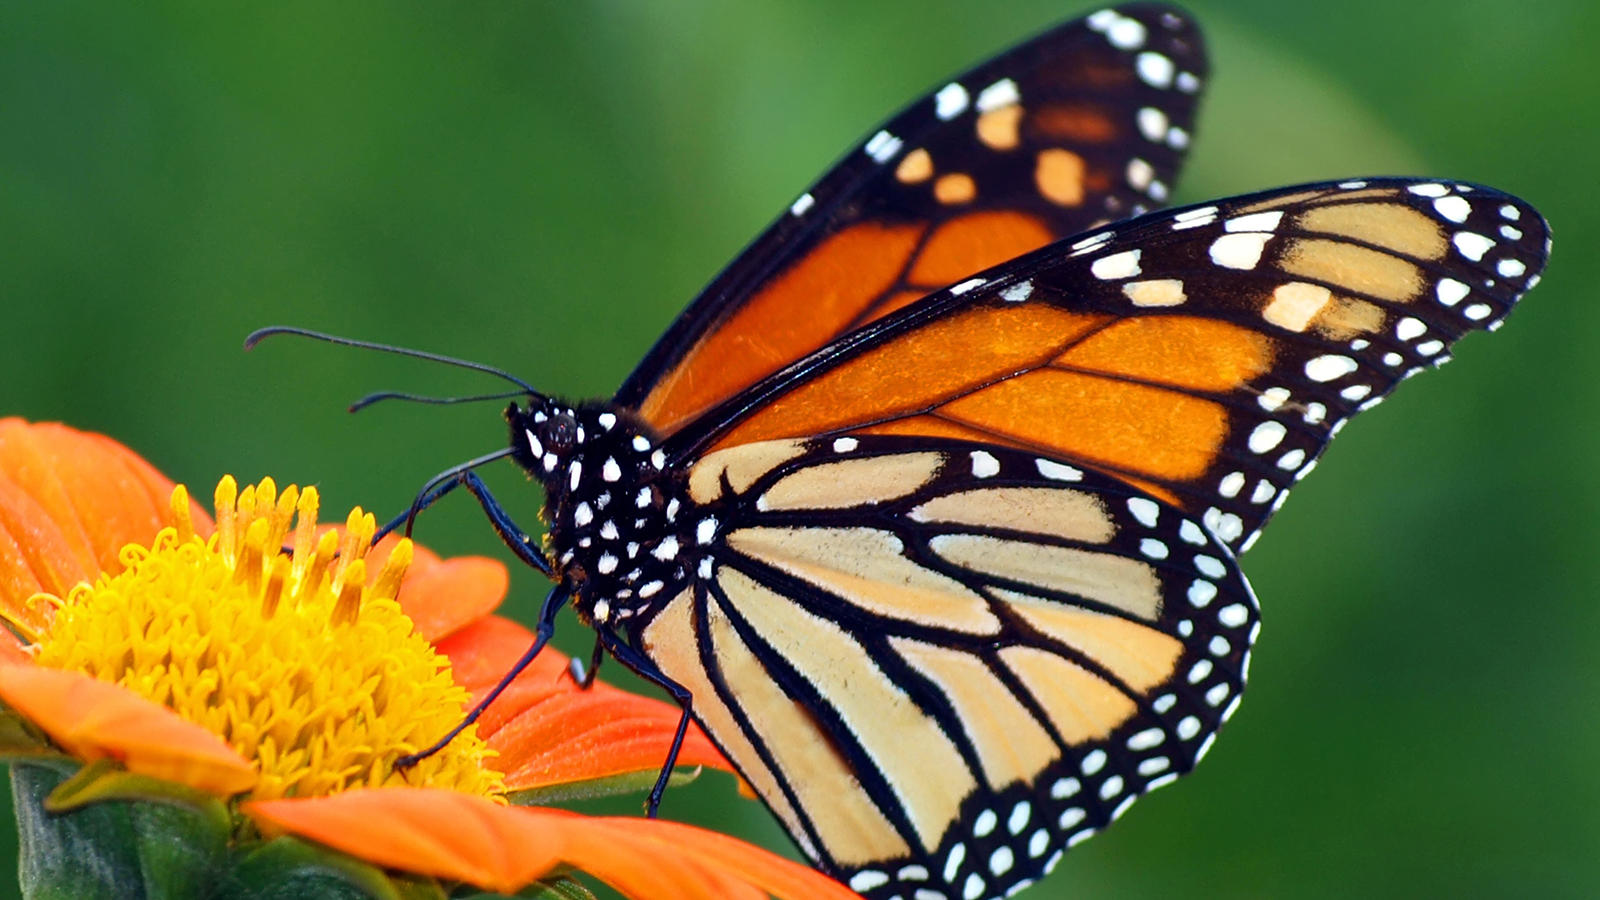 Monarch Butterfly wallpaper 1600x900 13800 1600x900